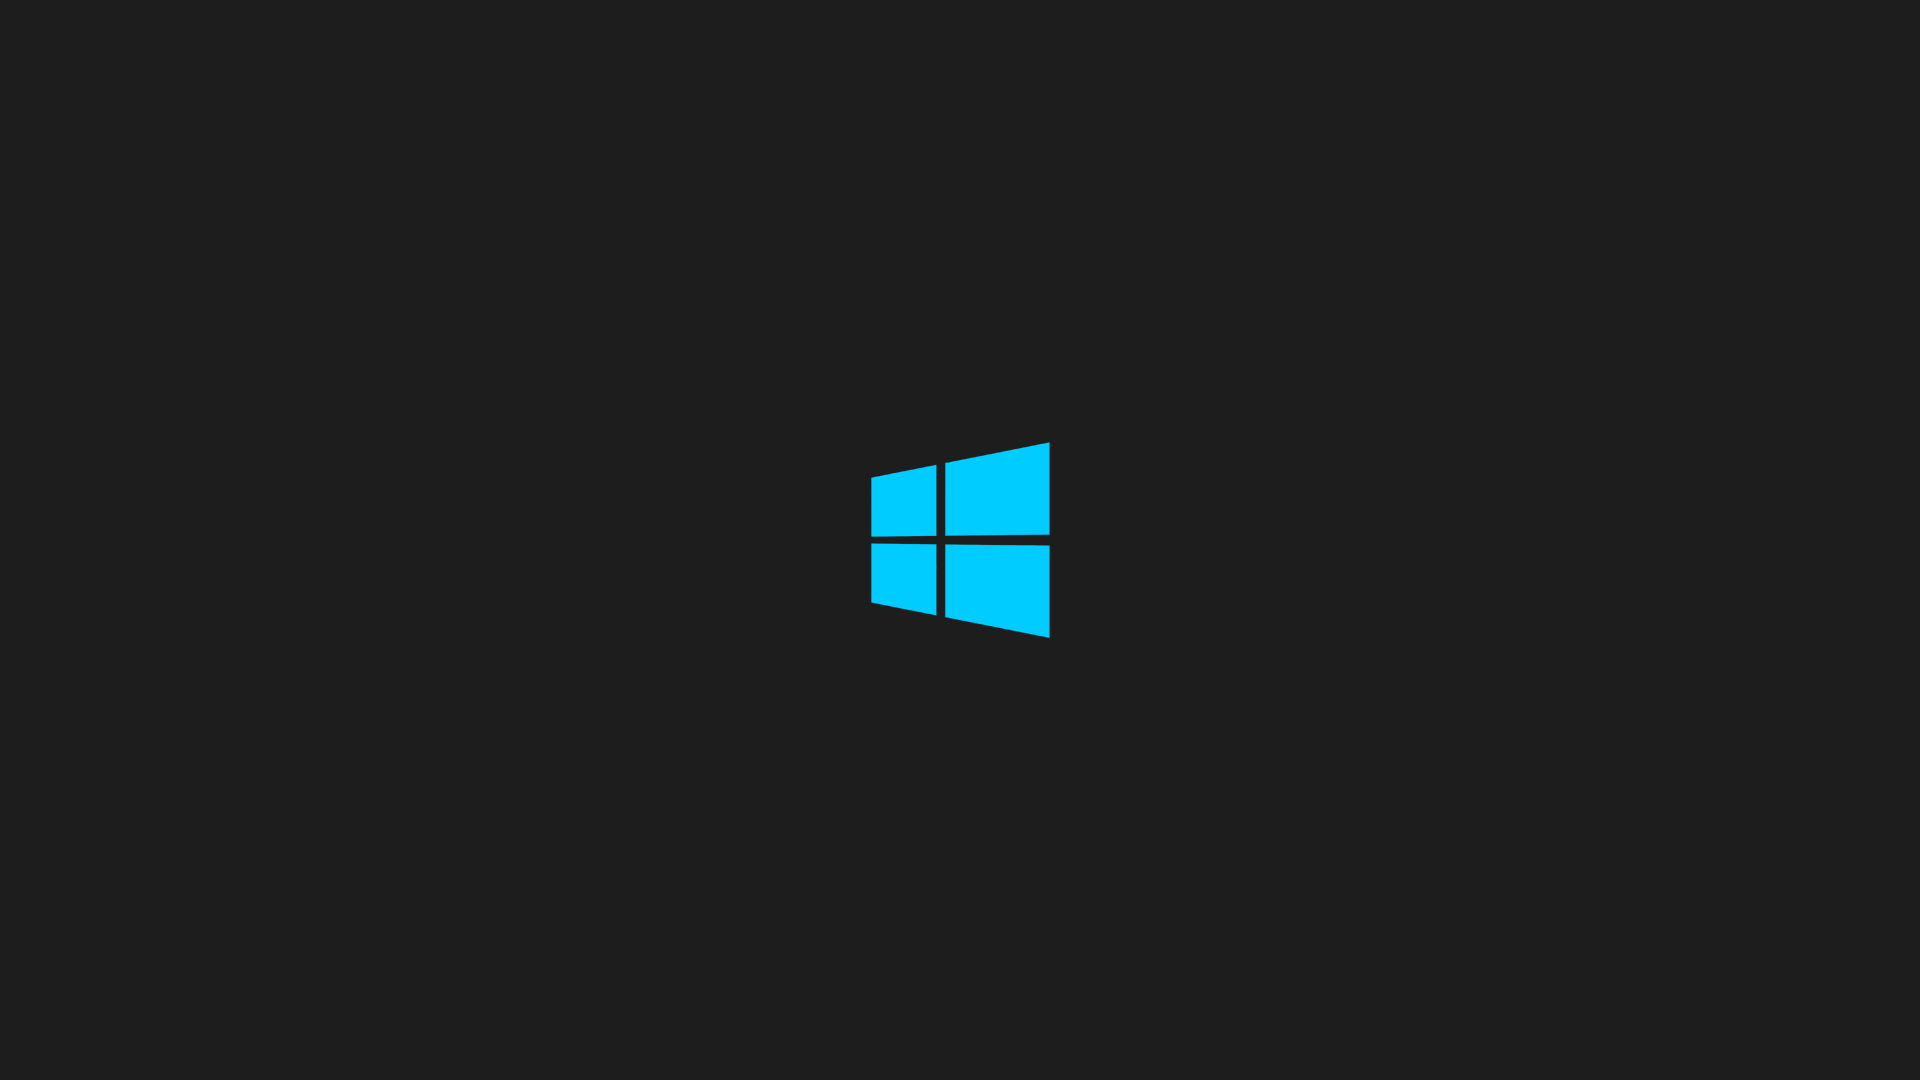 windows dark hd wallpapers